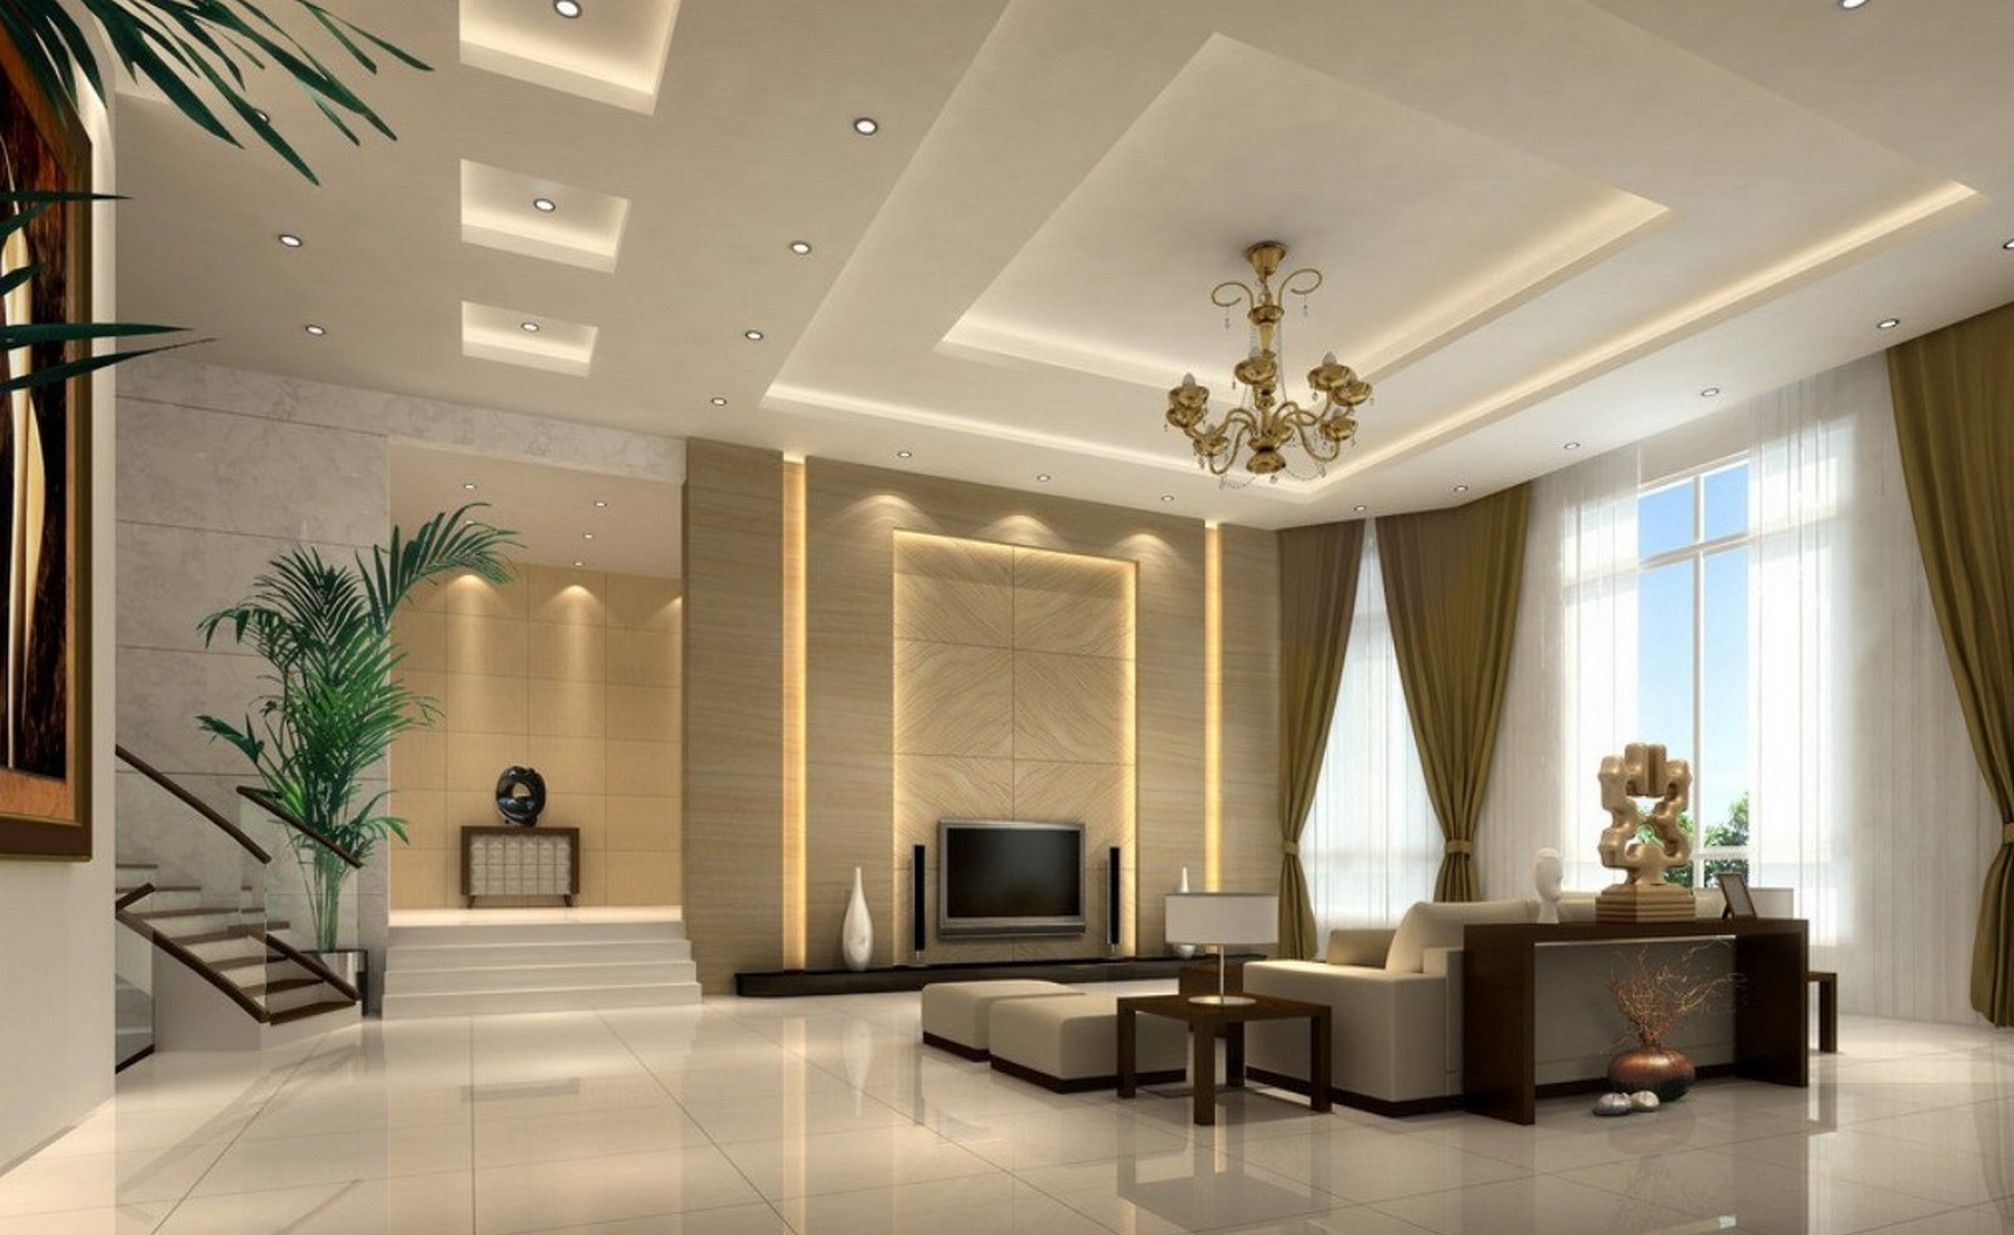 Gypsum board ceiling design ideas google search kahawa - Interior design ceiling living room ...